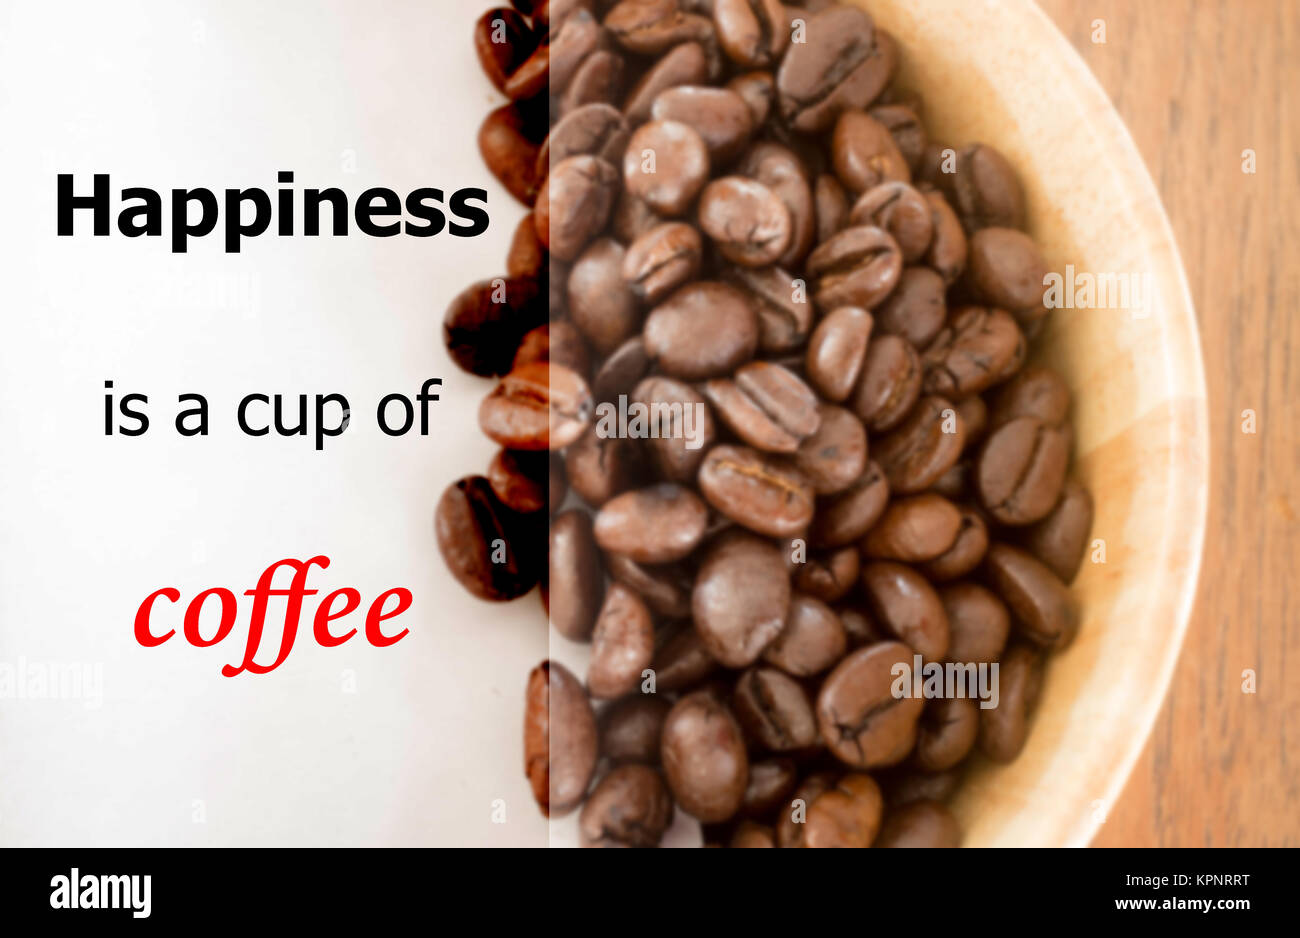 happiness is a cup of coffee quote on blur coffee bean background